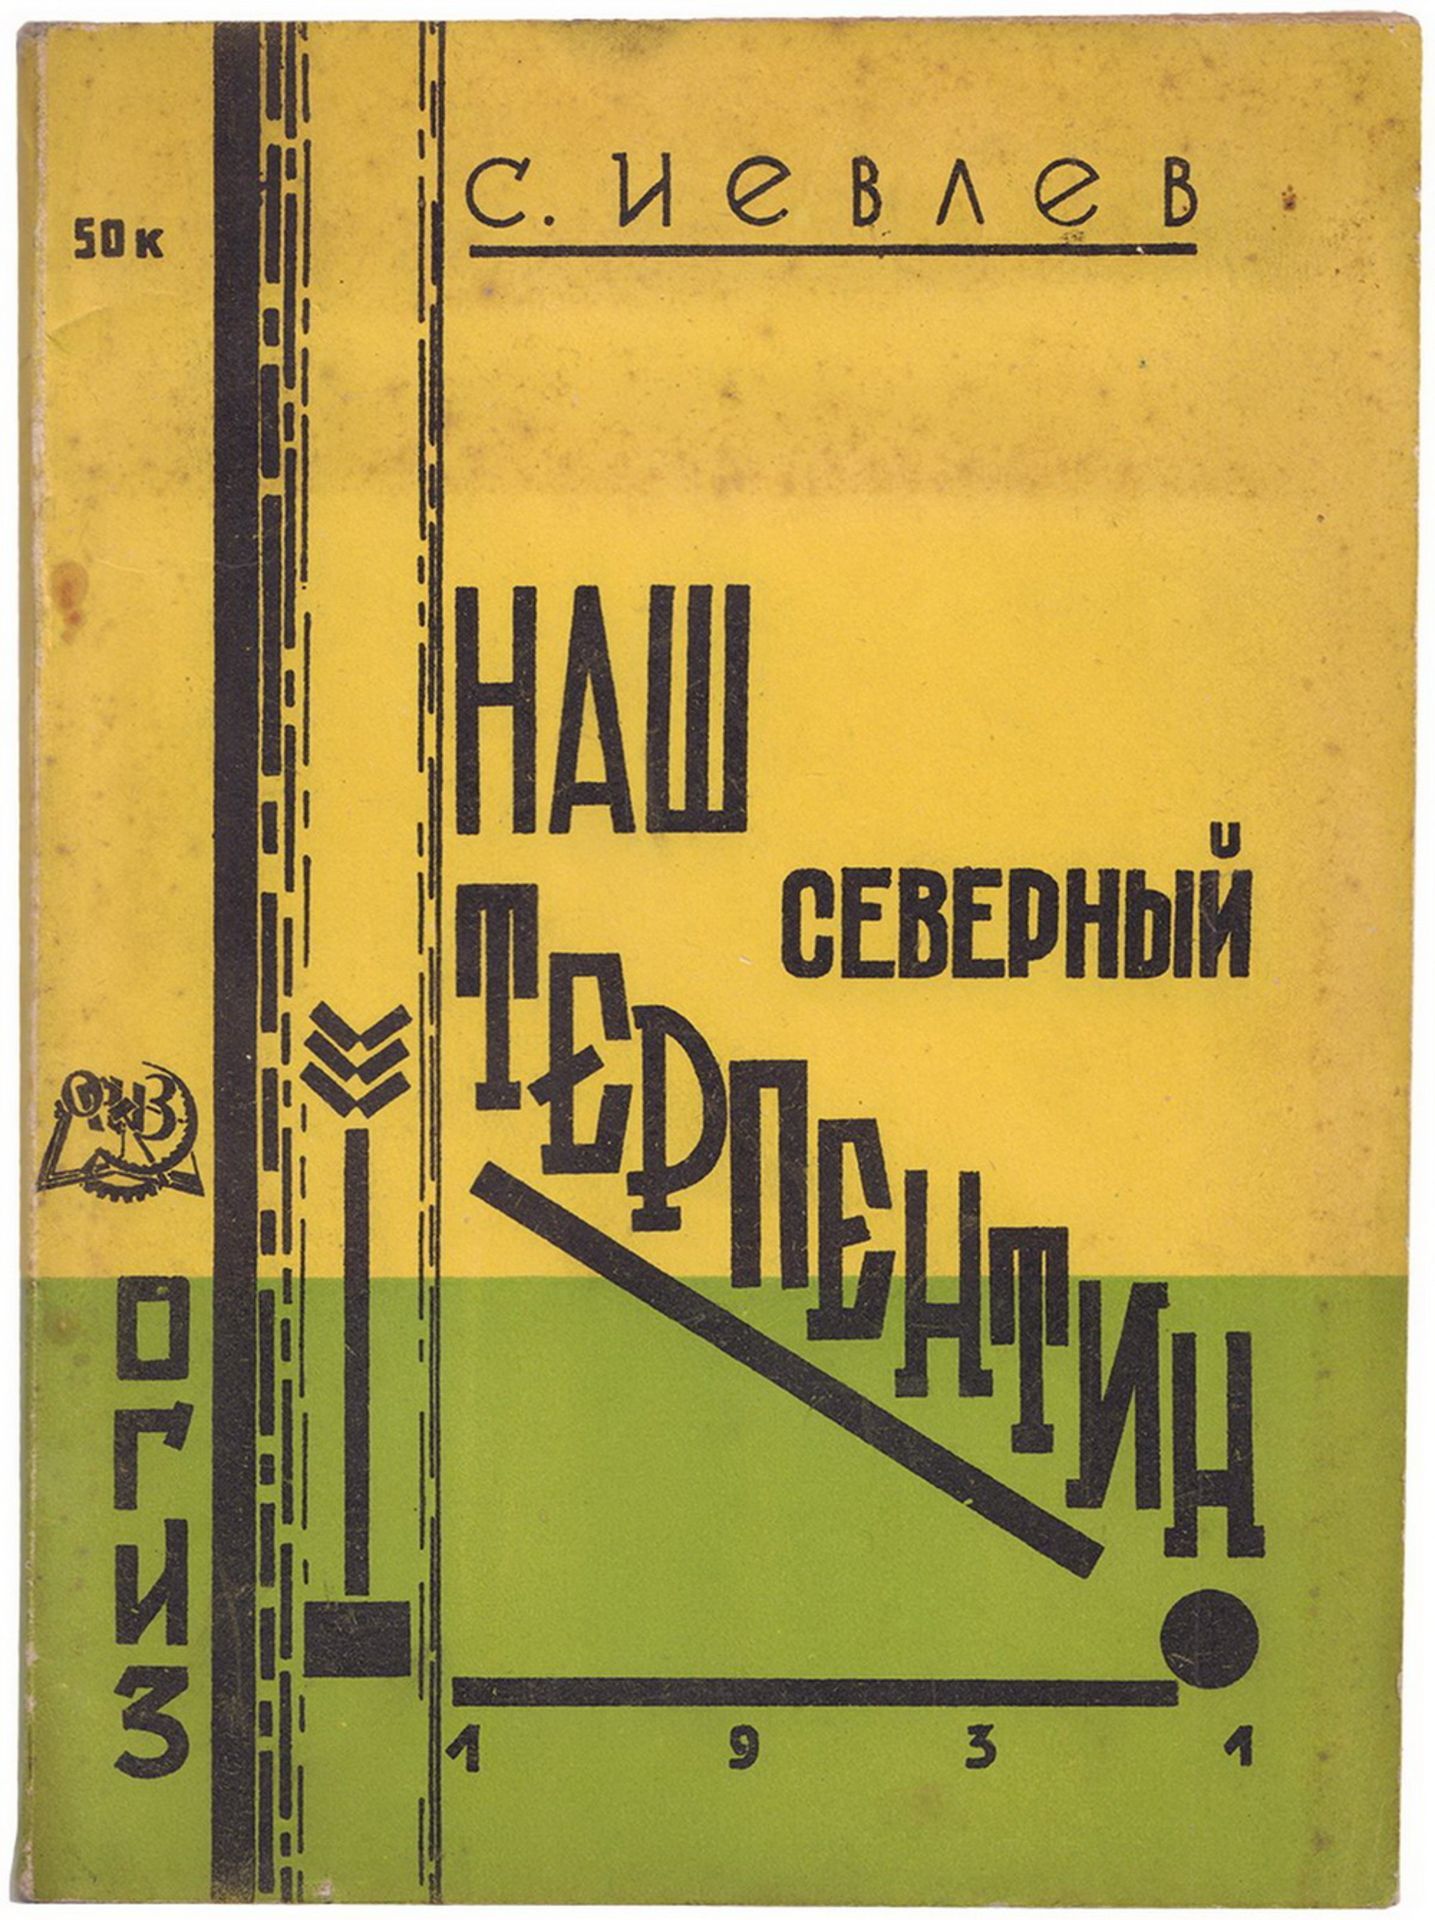 [Soviet art]. Ievlev, S. Our north Turpentine / S.F. Ievlev. - Arkhangelsk, 1931. - 80 pp.: ill.; 29